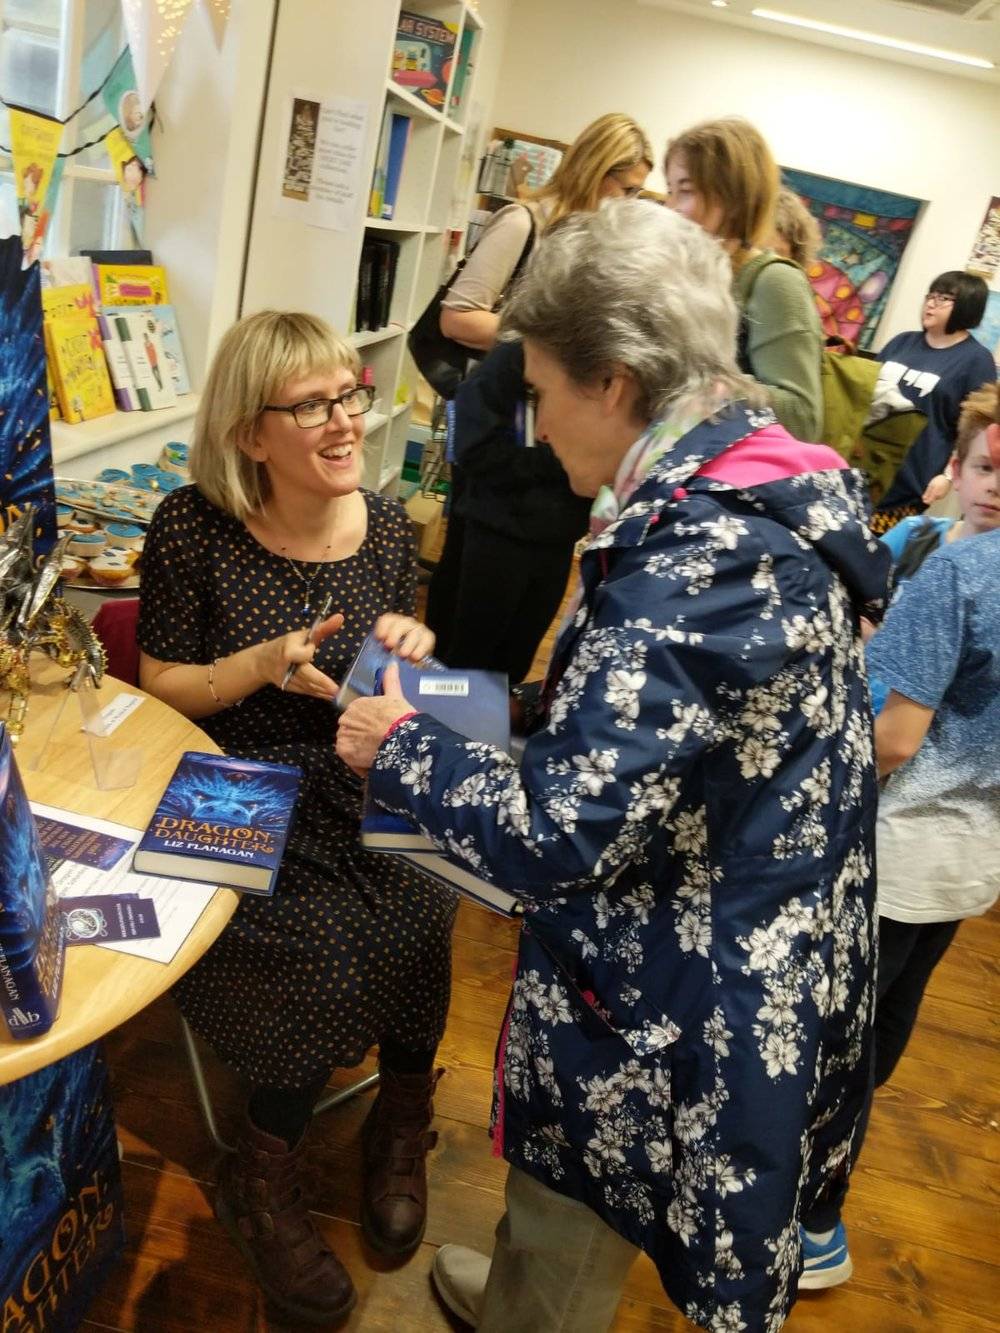 Liz book launch signing books.JPG